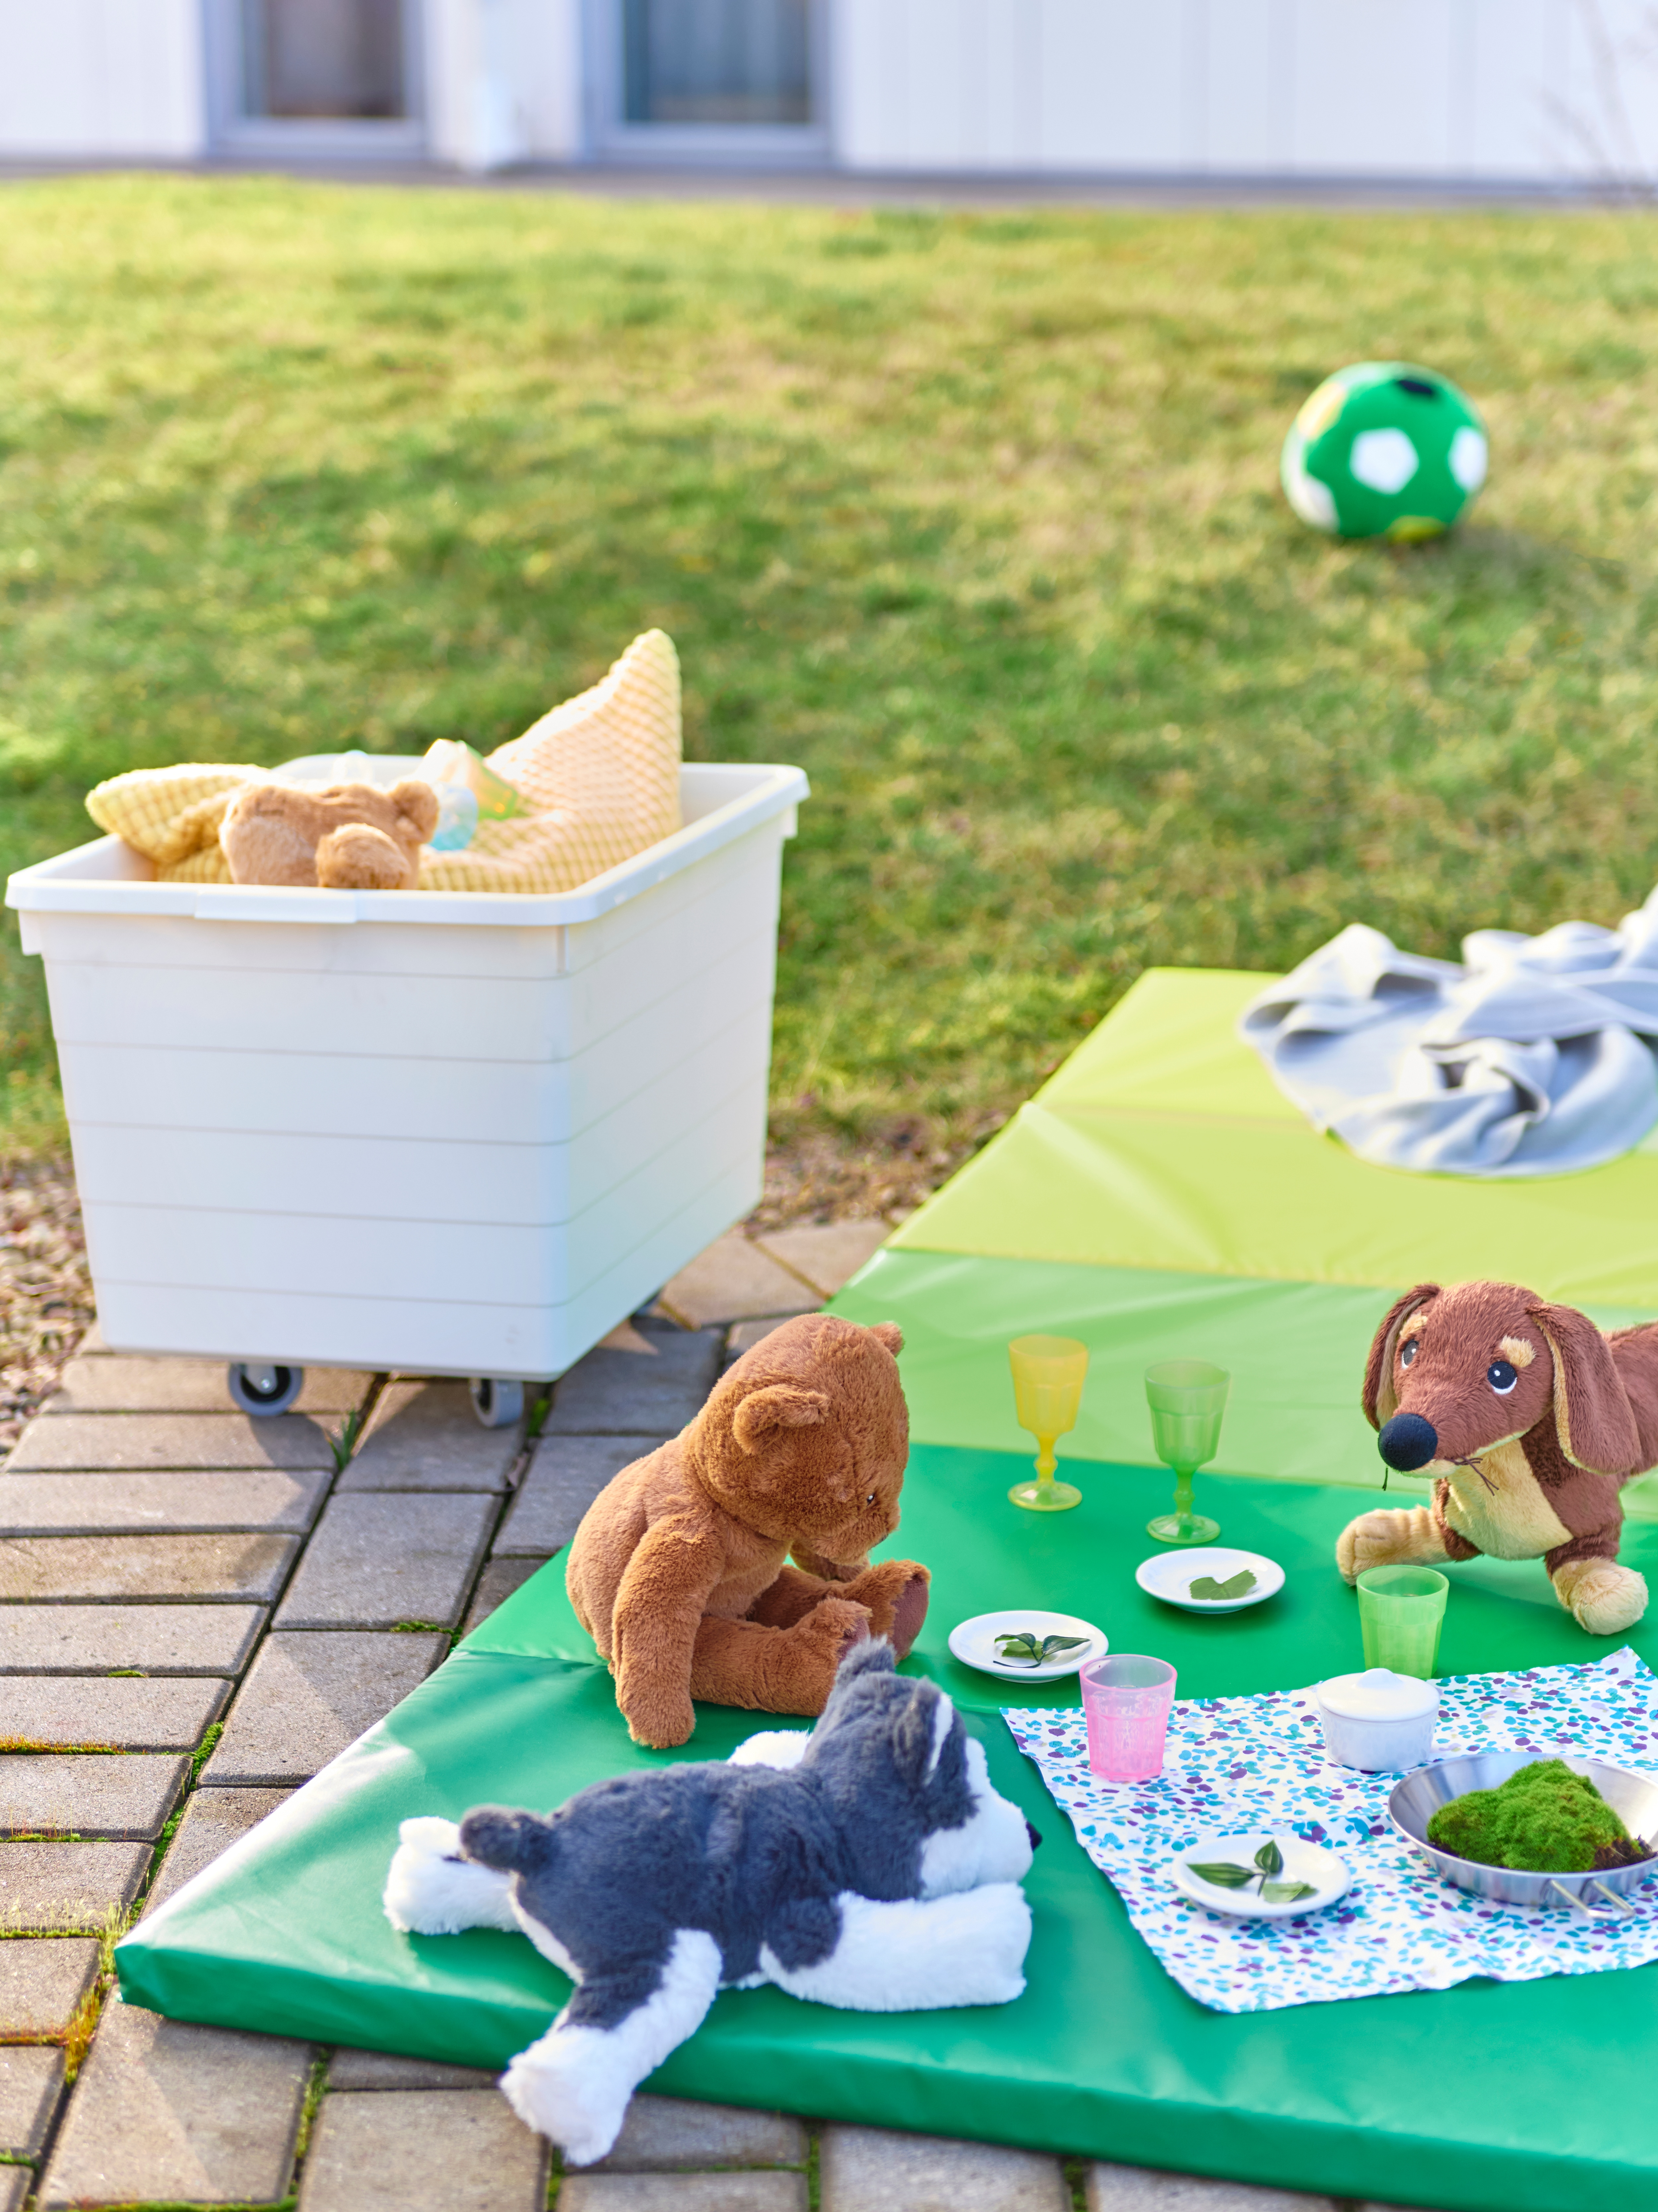 Soft toy animals have a pretend meal on a green PLUFSIG folding gym mat on a brick area by a box of toys on some grass.